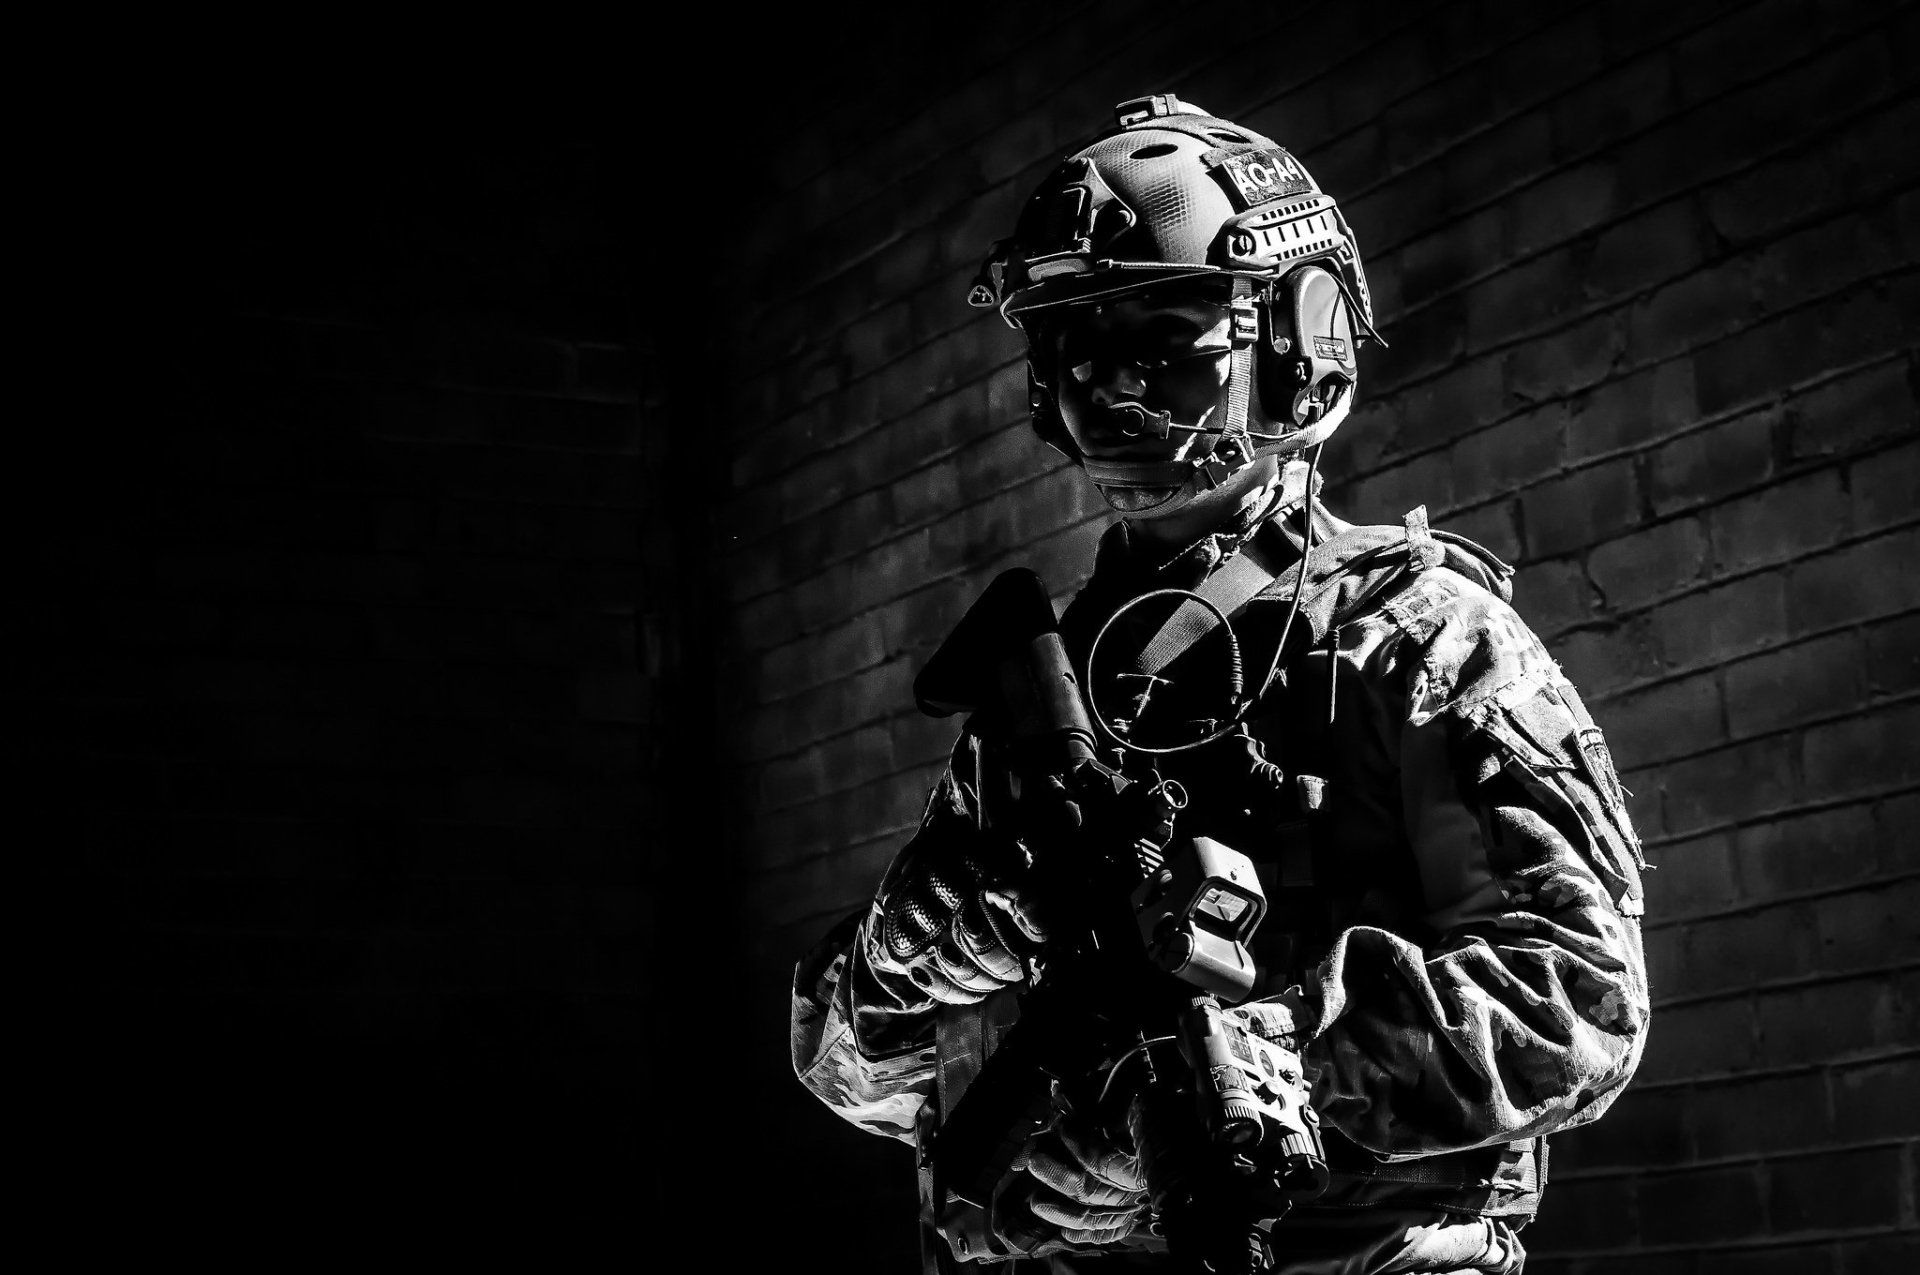 Military Soldier Wallpaper In 2019 Black N White Wallpaper